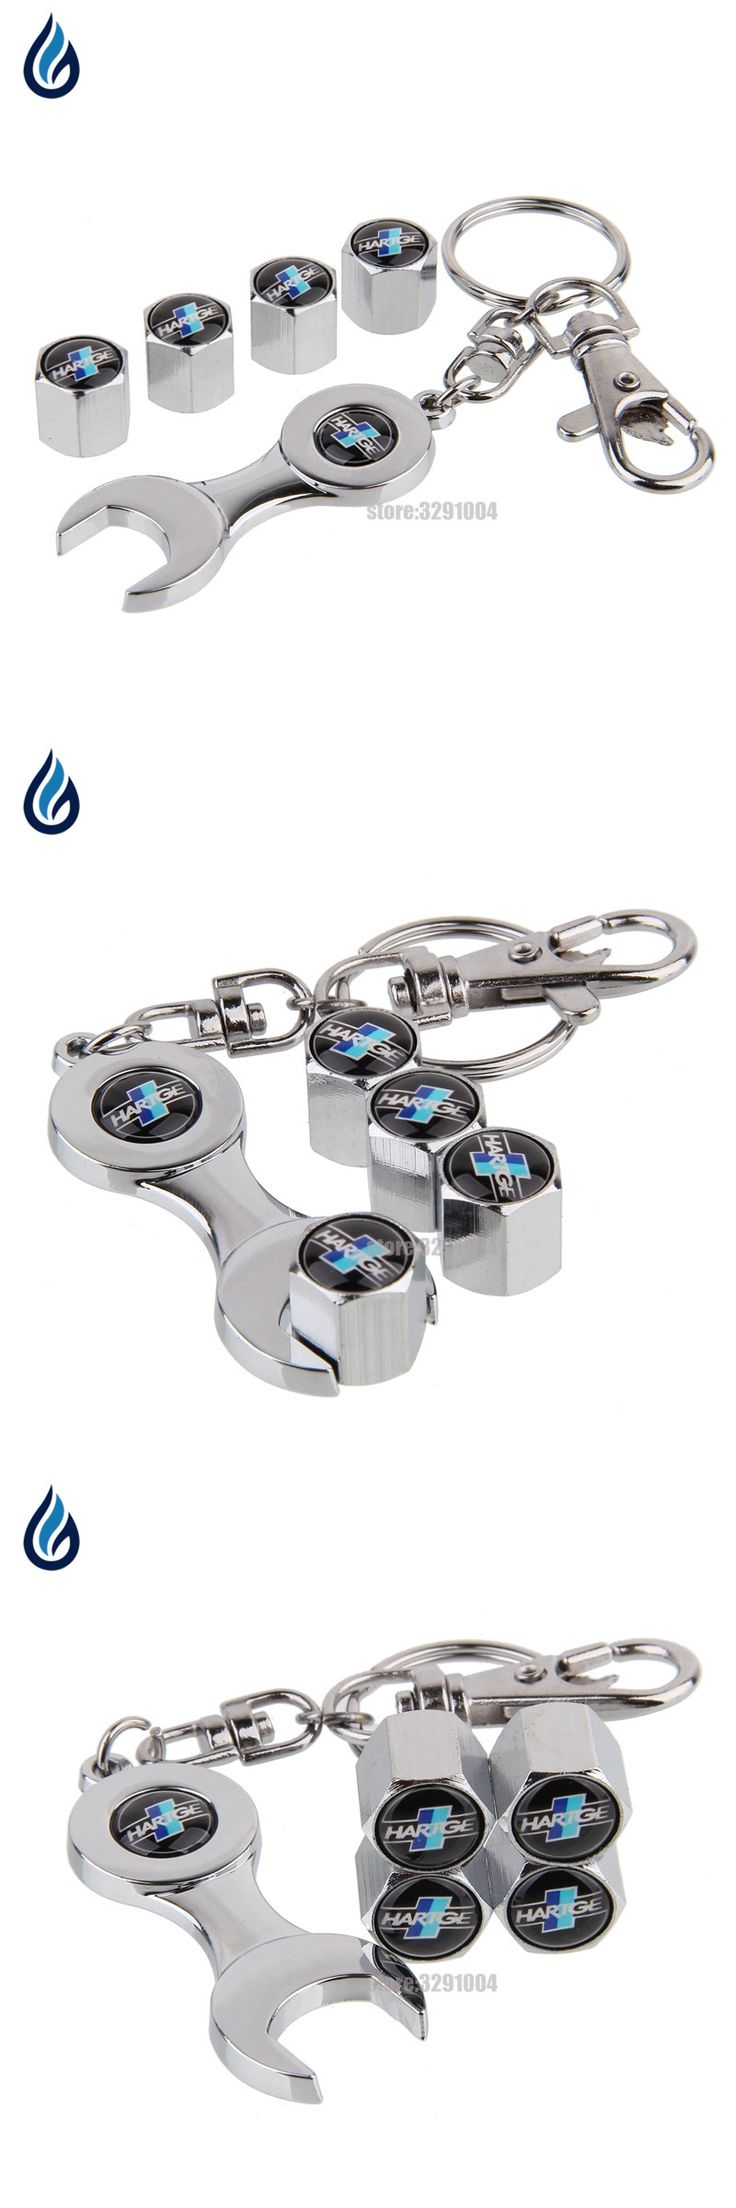 Car Wheel Tire Stems Caps Cover With Wrench KeyChain For BMW HARTGE Logo E46 E39 E36 E90 E60 F30 X5 E53 E34 F10 E30 X5 E70 F20